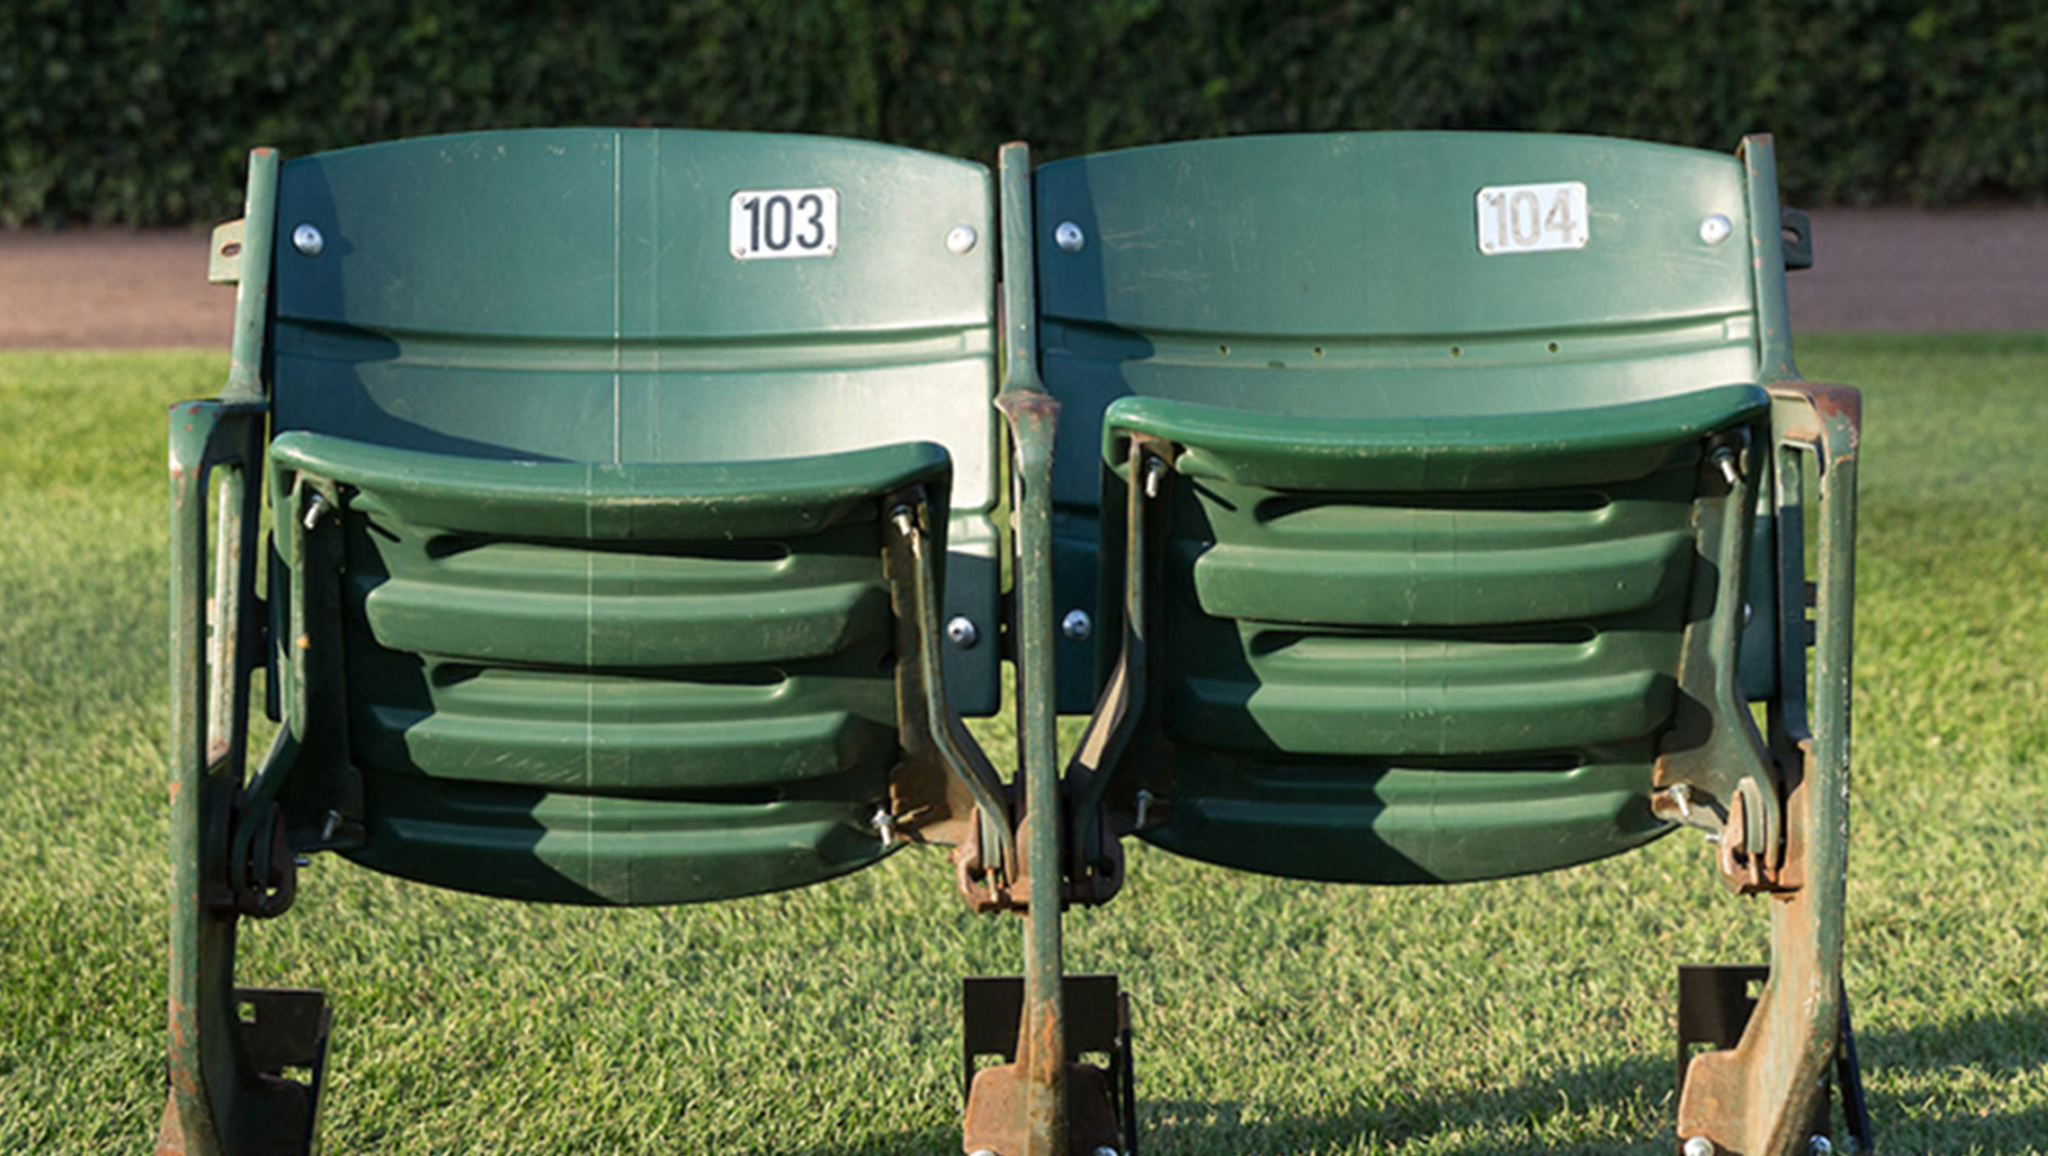 Would you buy a pair of Wrigley Field seats for $899?